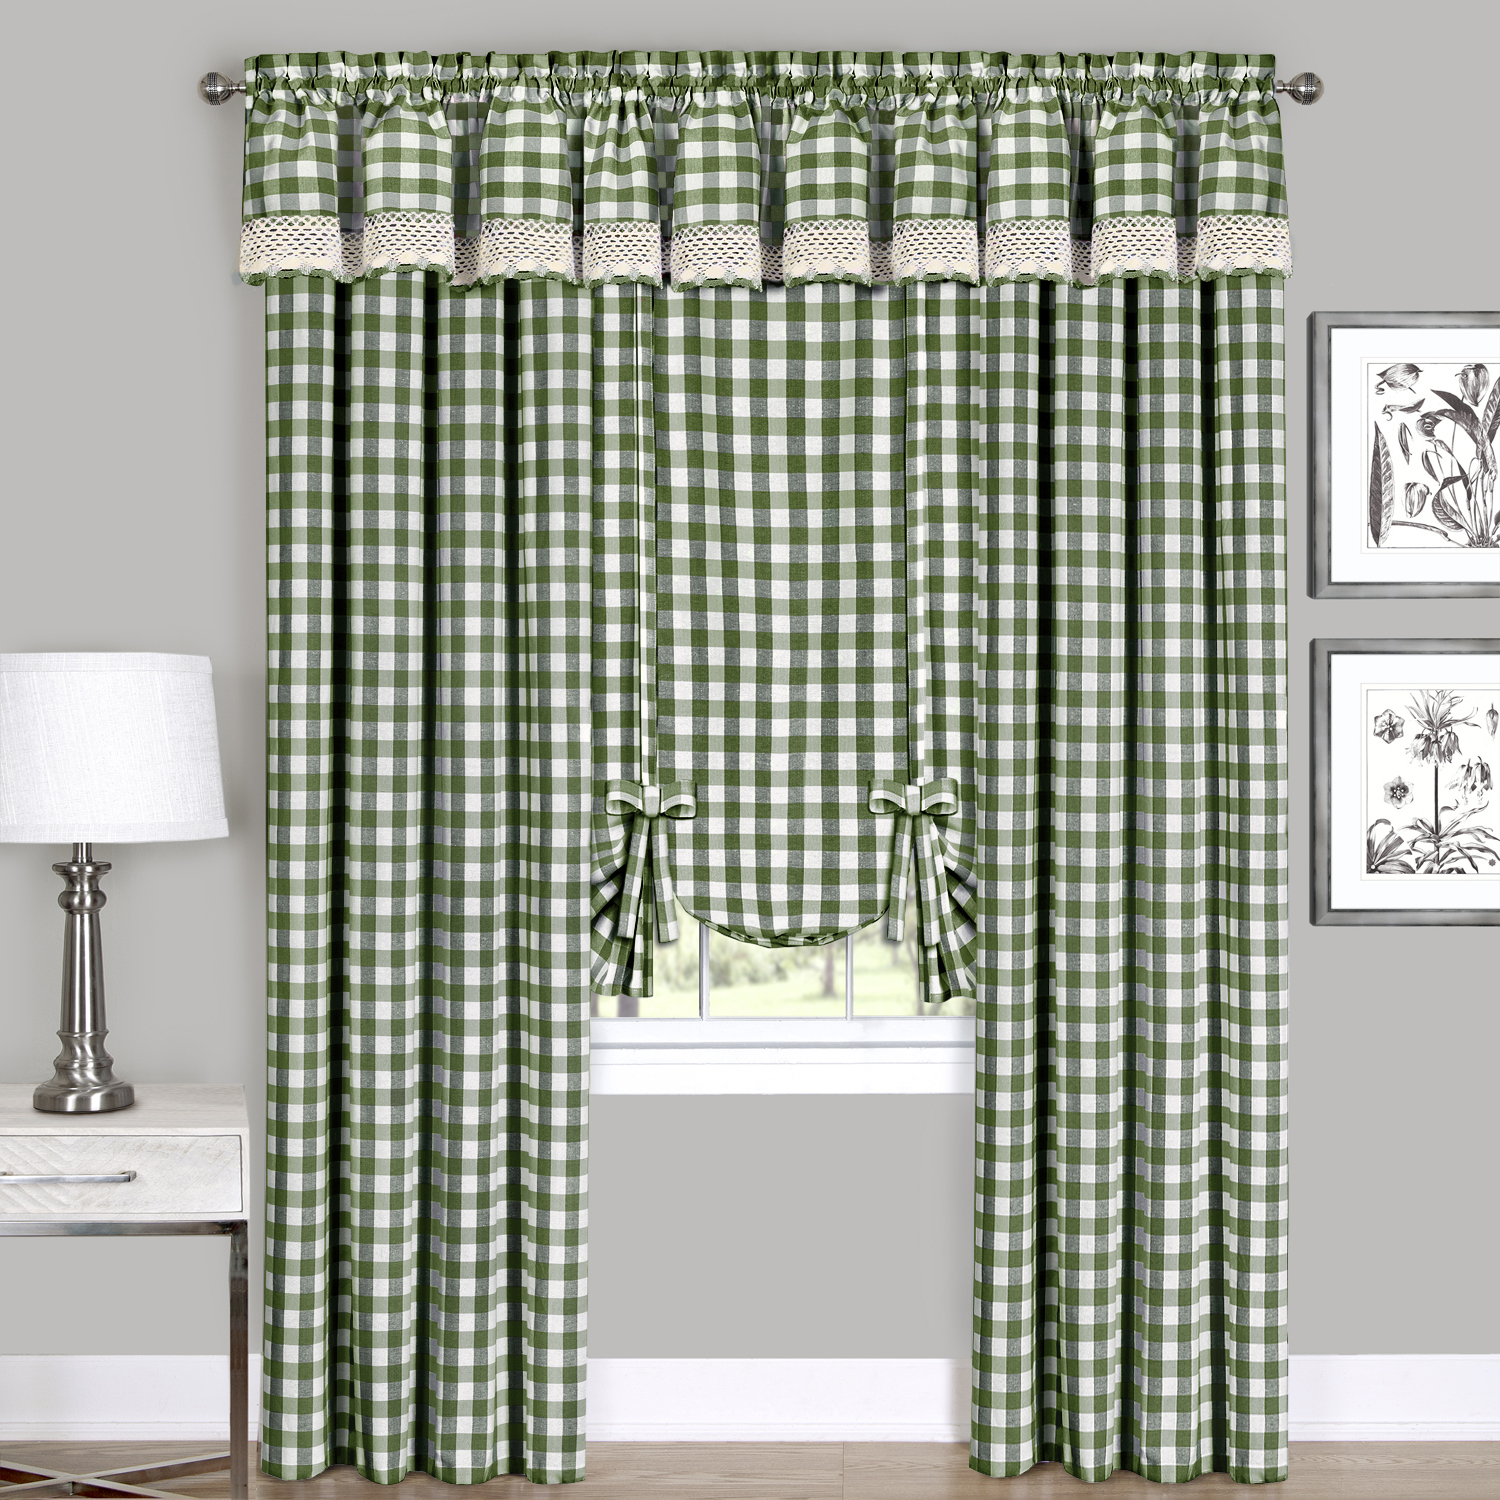 style spin pennington ty burnout prod wid x direct p in drapes qlt factory sheer panel hei